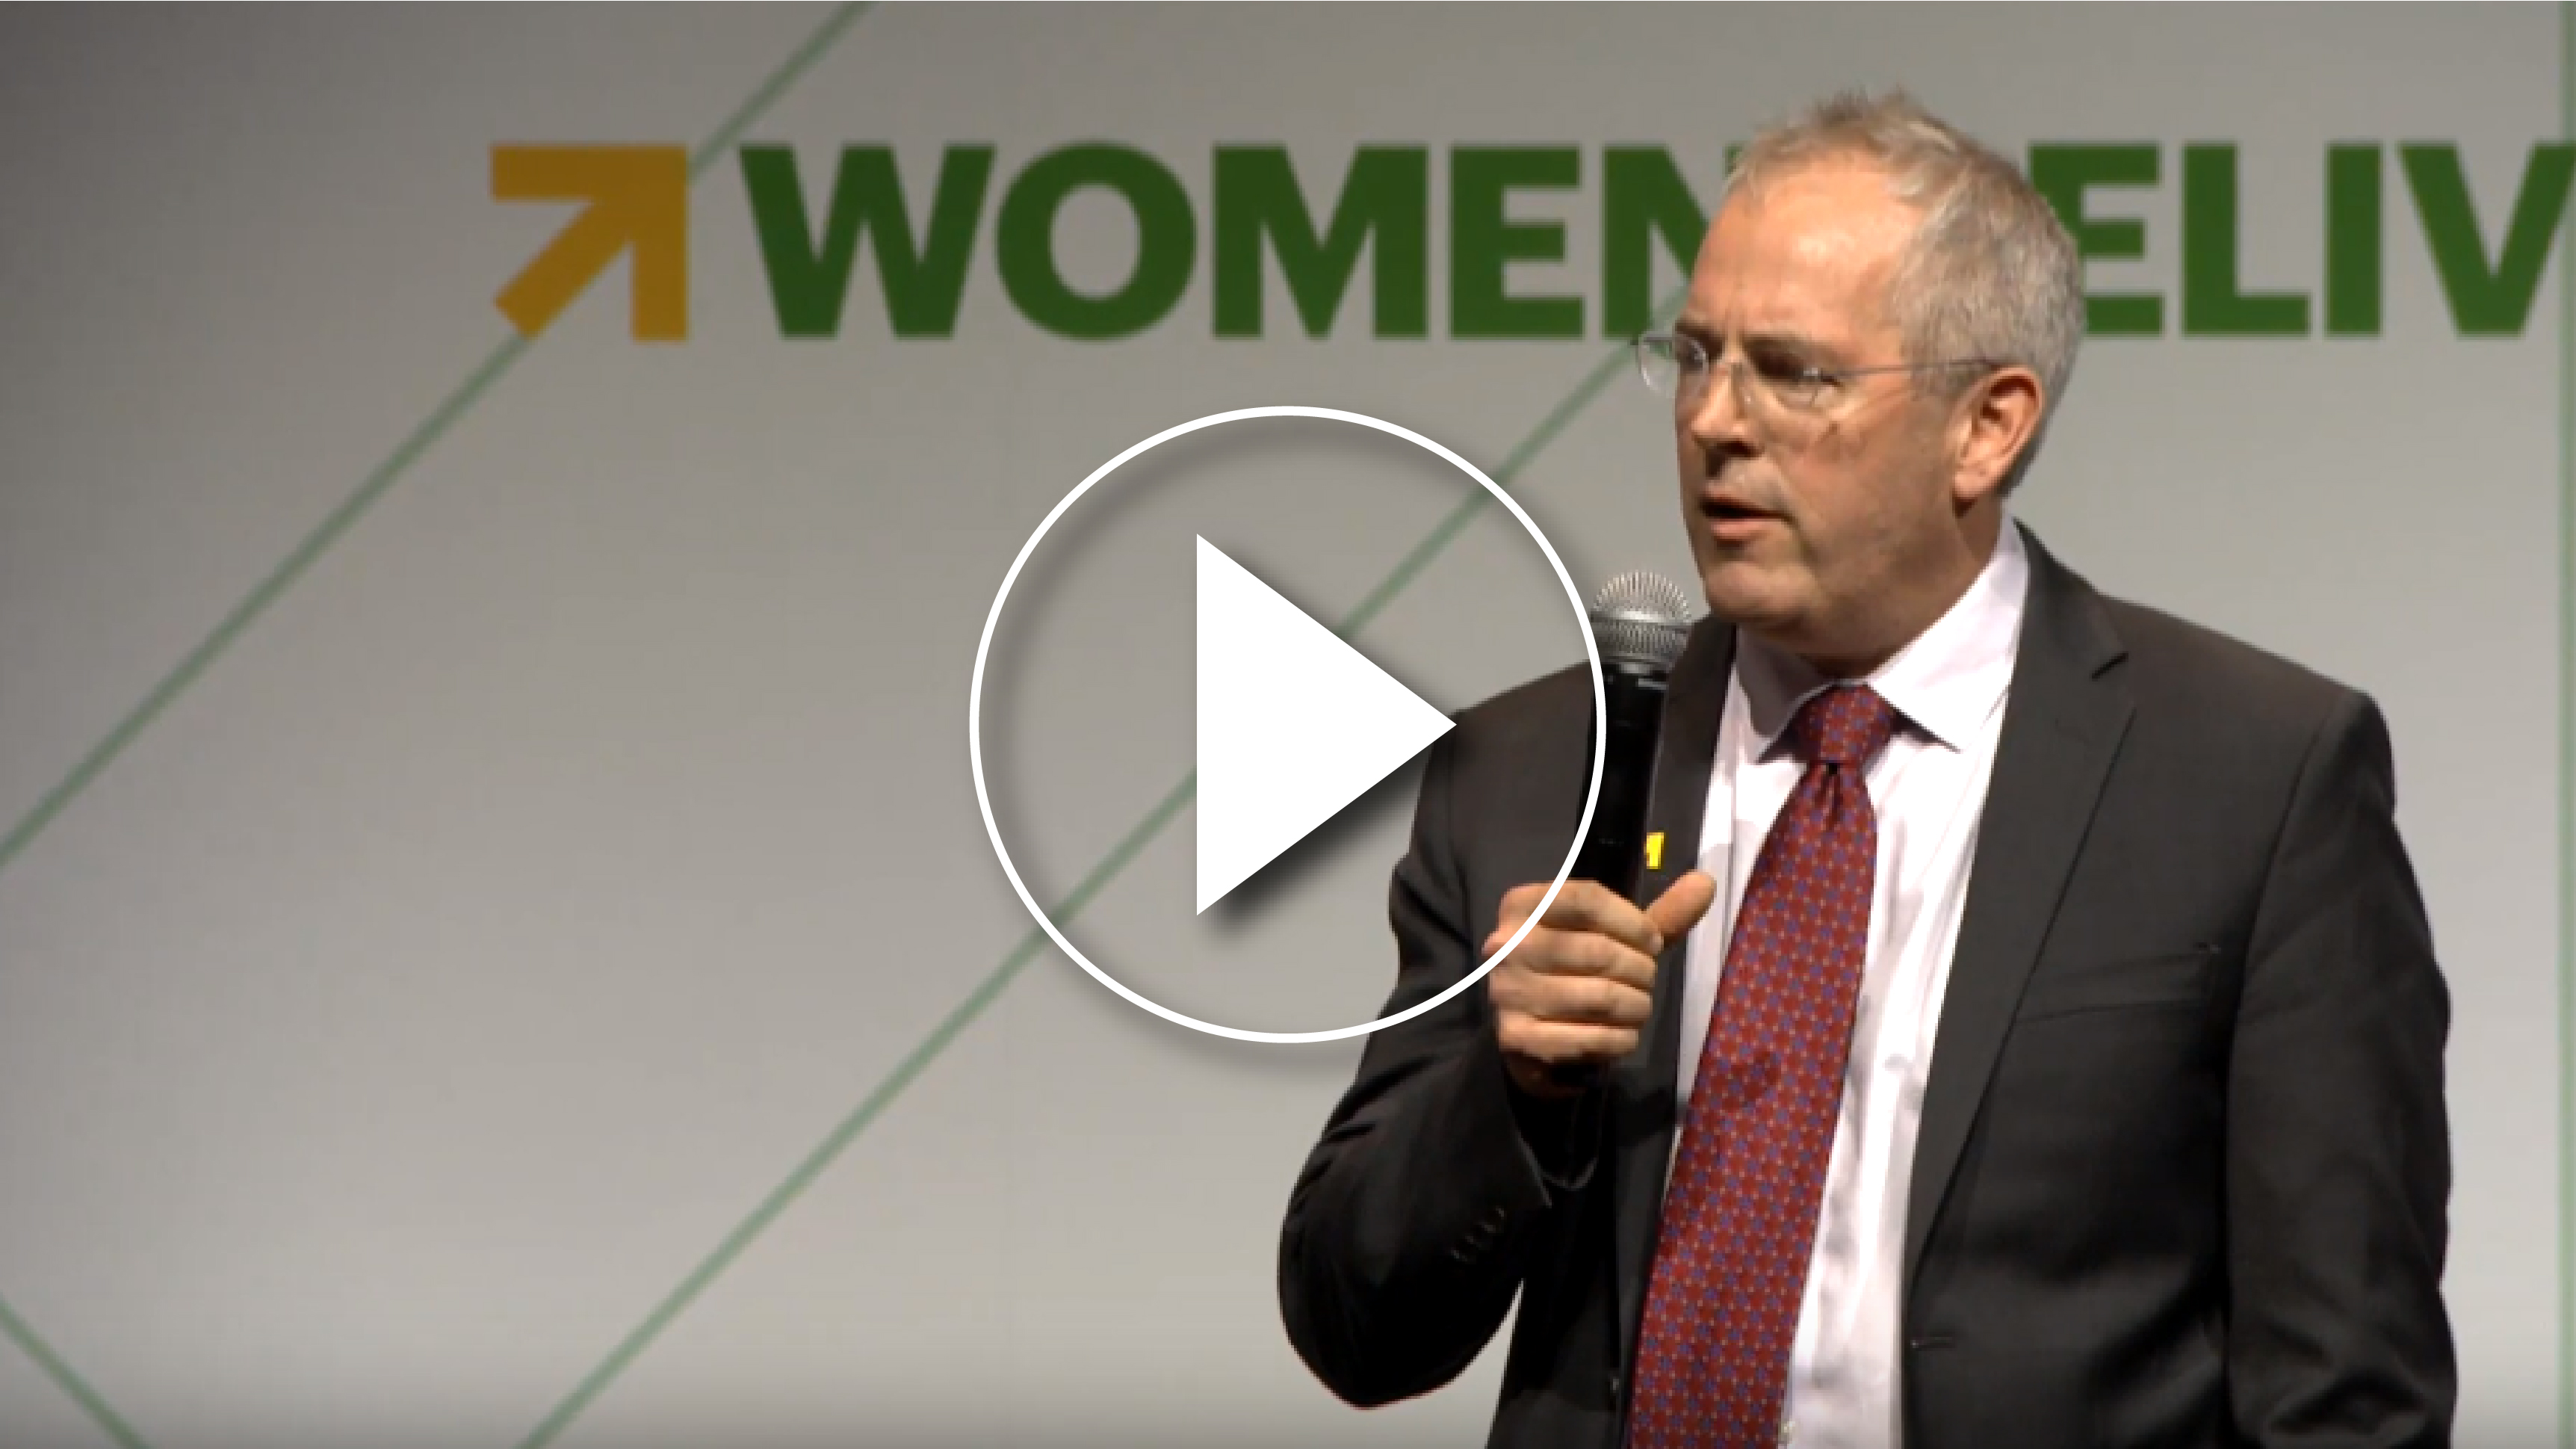 Chris Jochnick speaking at Women Deliver 2019